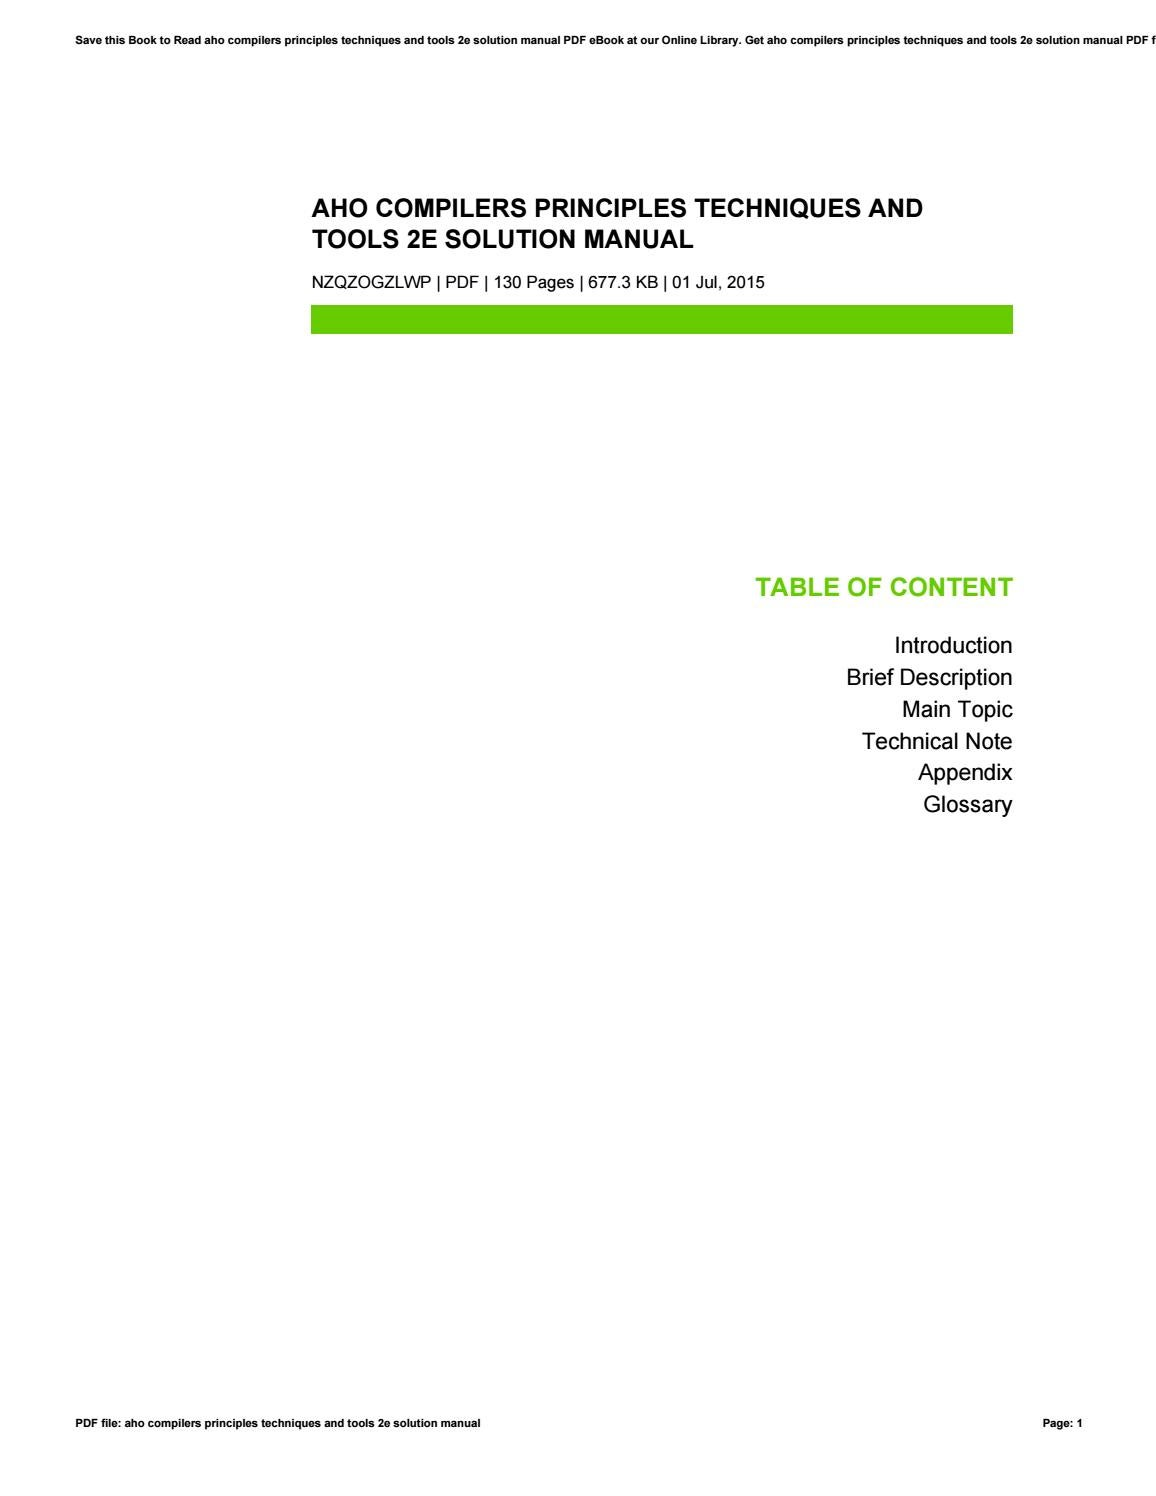 Aho compilers principles techniques and tools 2e solution manual by  AlexandriaKennedy242111 - issuu